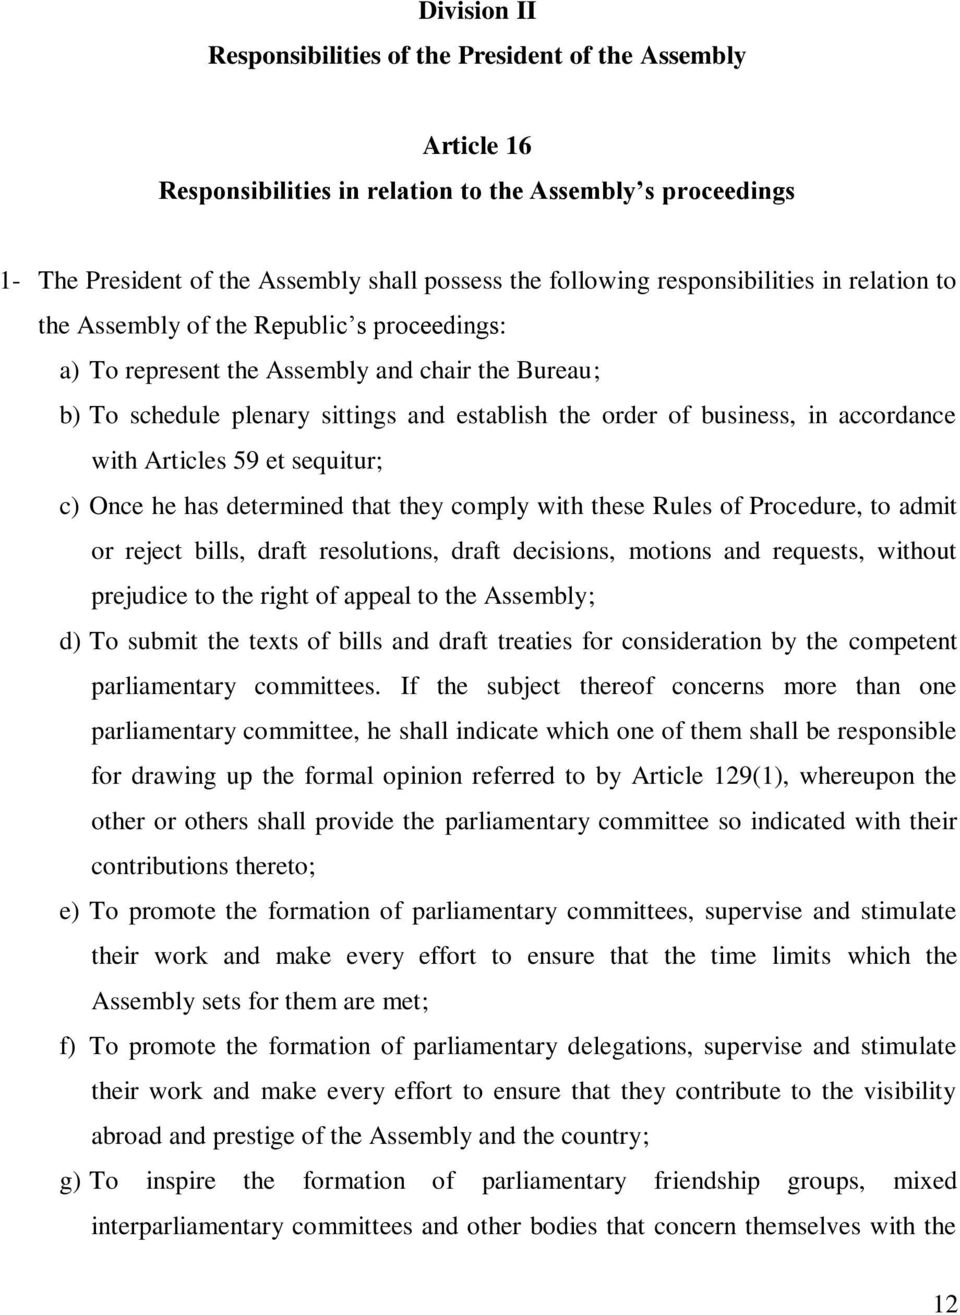 accordance with Articles 59 et sequitur; c) Once he has determined that they comply with these Rules of Procedure, to admit or reject bills, draft resolutions, draft decisions, motions and requests,